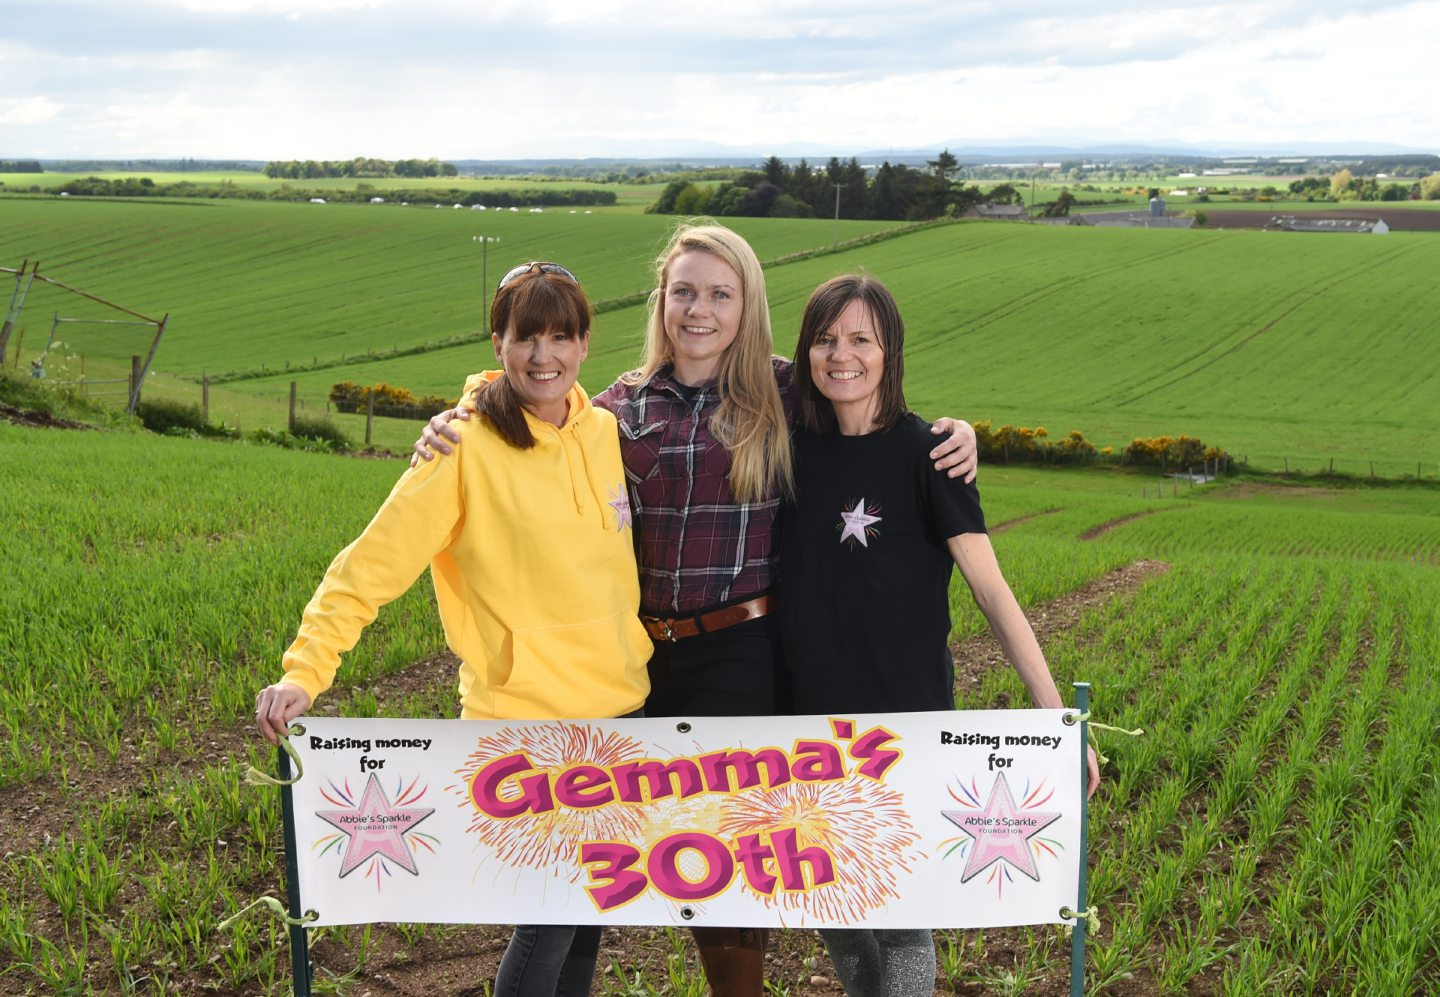 Gemma Anderson (middle) who recently celebrated her 30th Birthday and raised £1444 for Abbie's Sparkle Foundation is pictured with Tammy Main(right) and Angela Jess (left). Picture by Jason Hedges